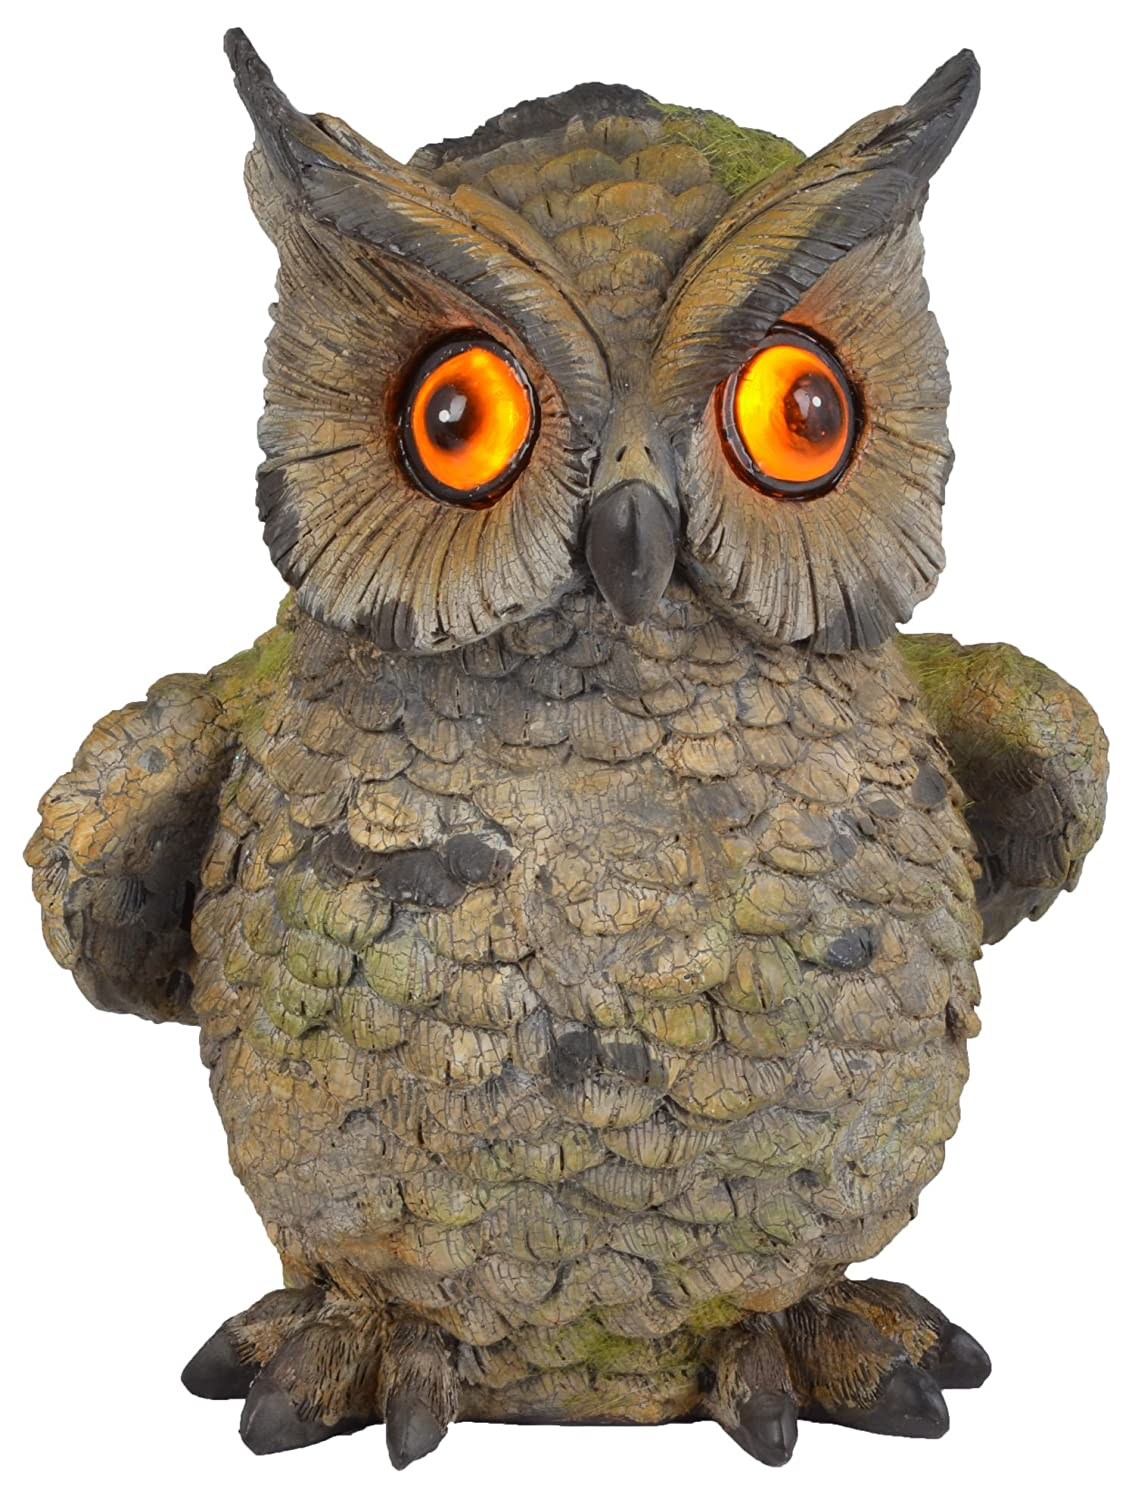 Moonrays 91257 Solar Light Hand Painted Polyresin Owl with LED Blinking Eyes [並行輸入品] B00ID8QHP8